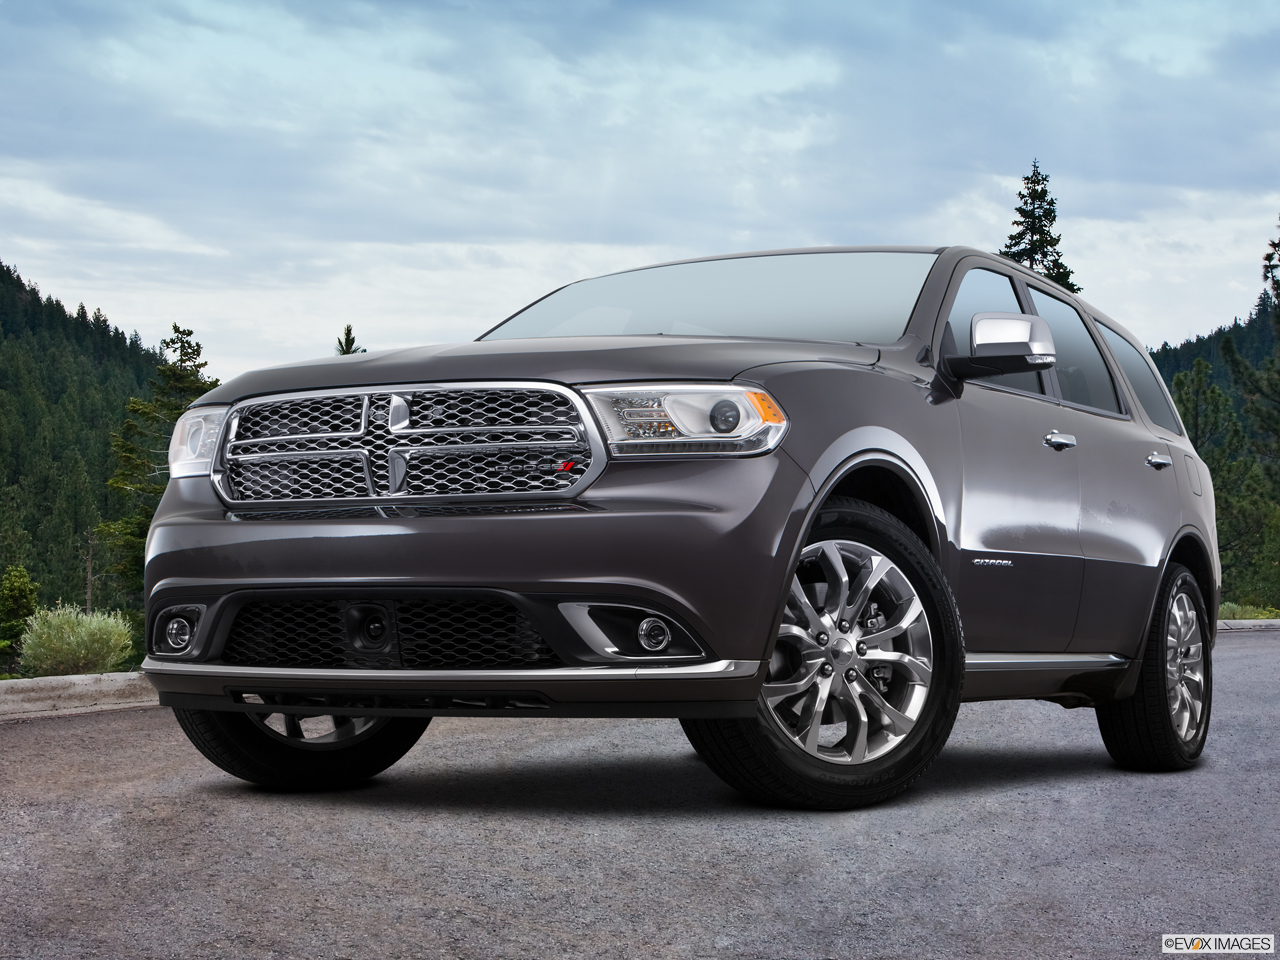 Exterior View Of 2017 Dodge Durango in West Palm Beach